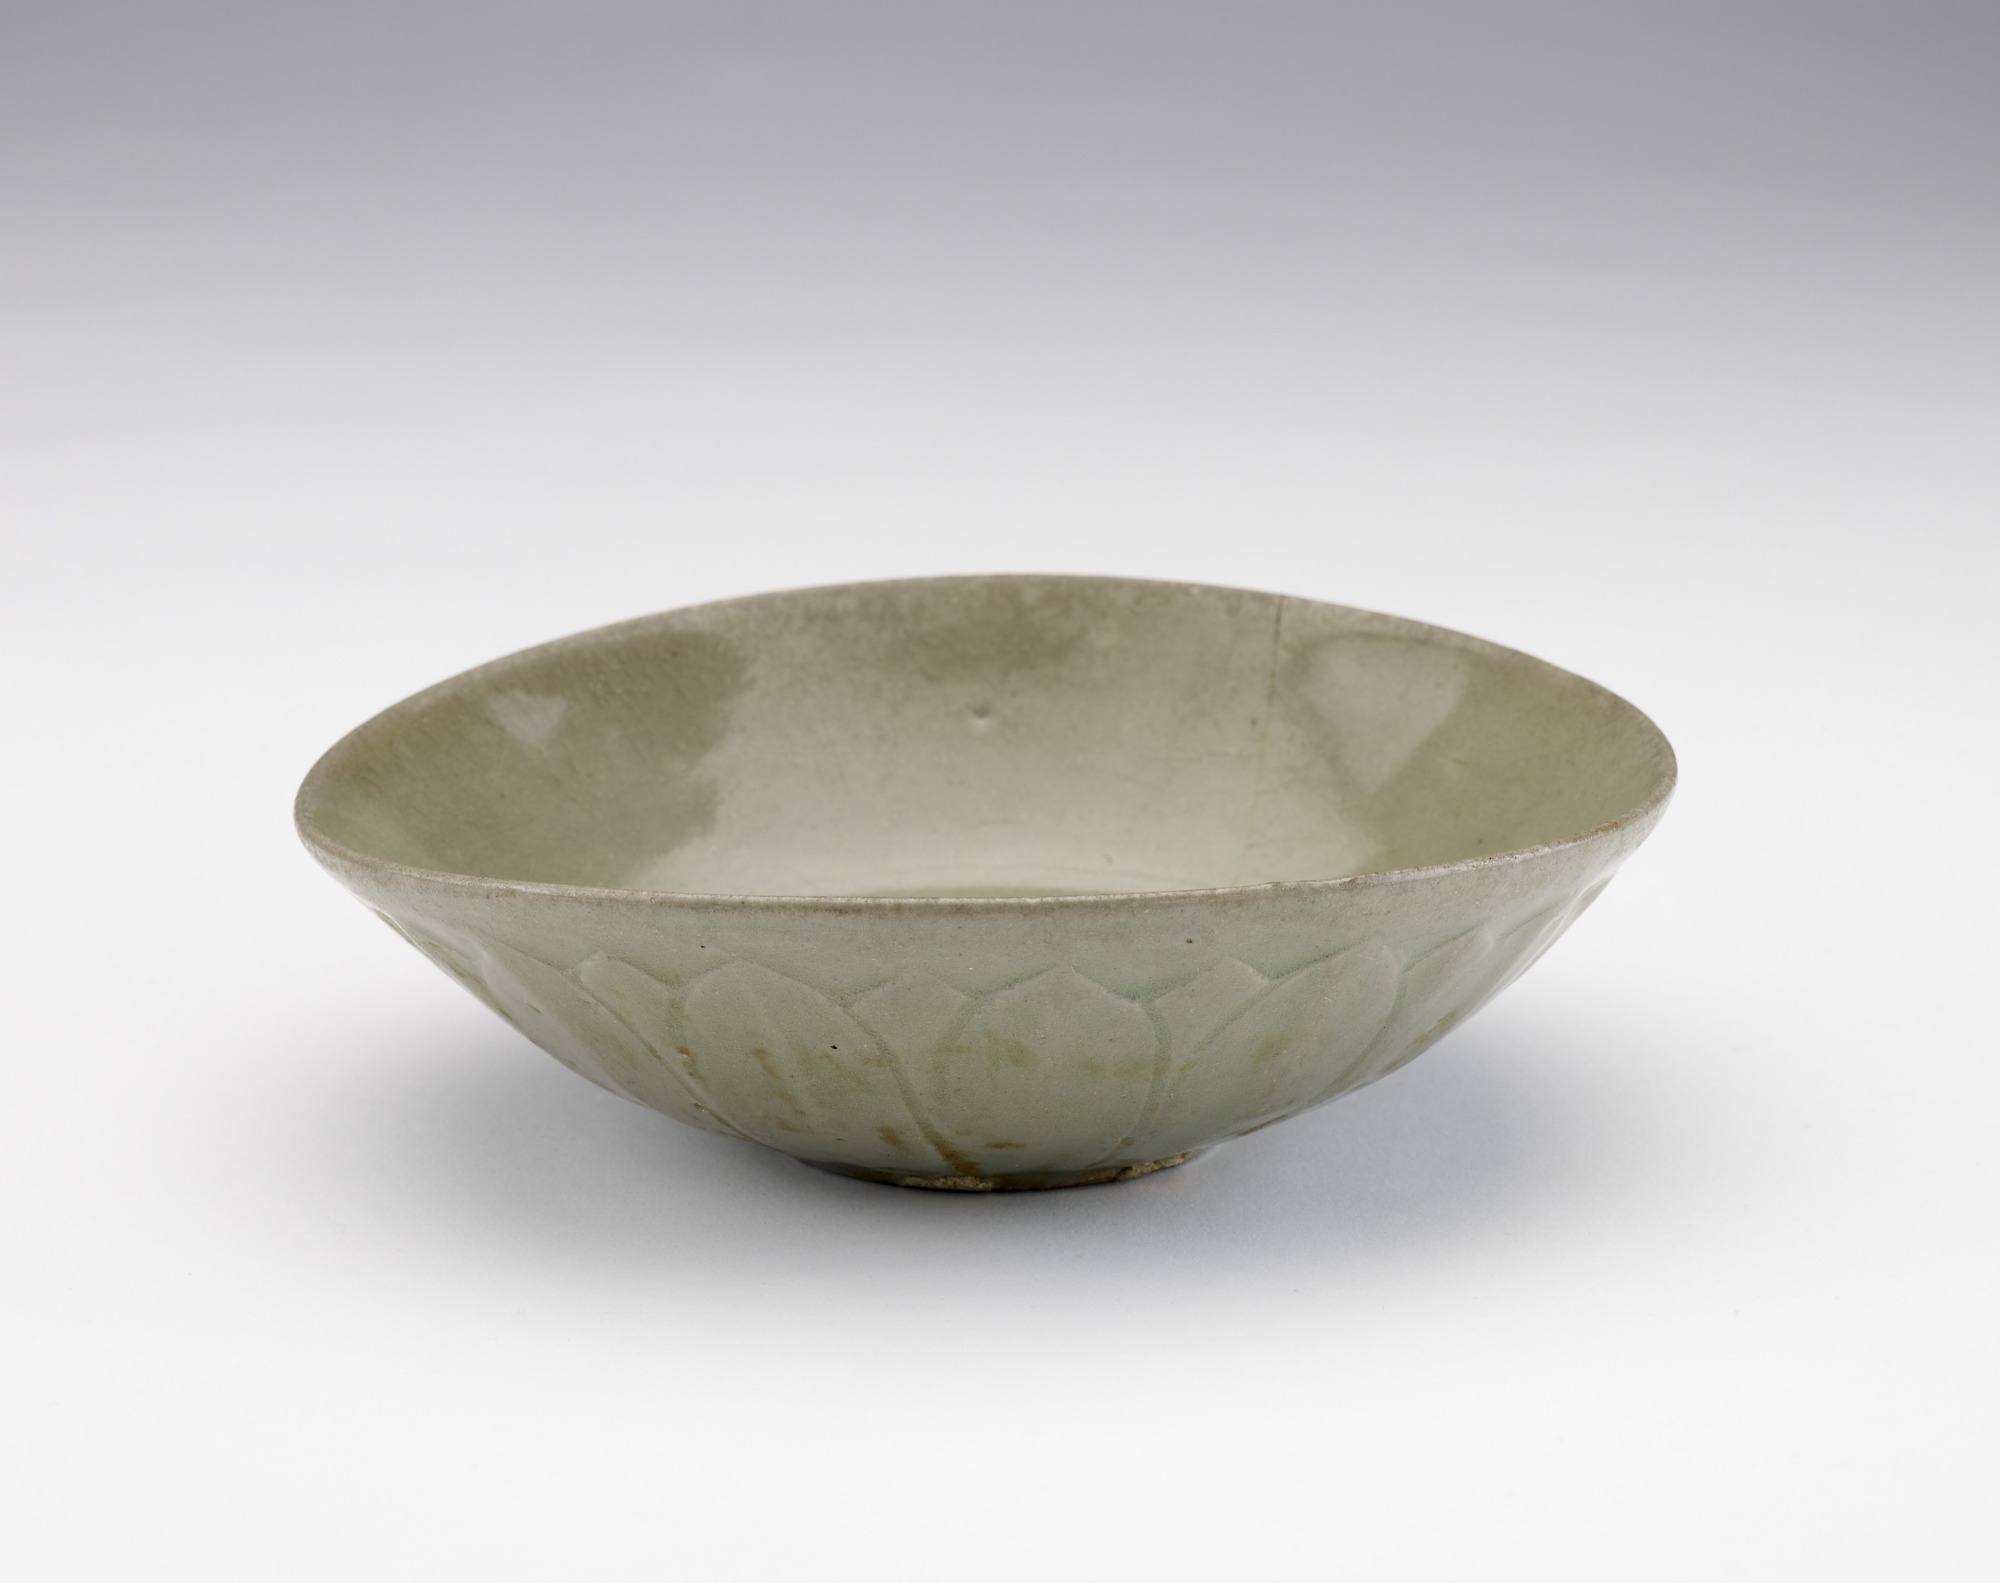 Bowl with molded and incised lotus decoration, profile